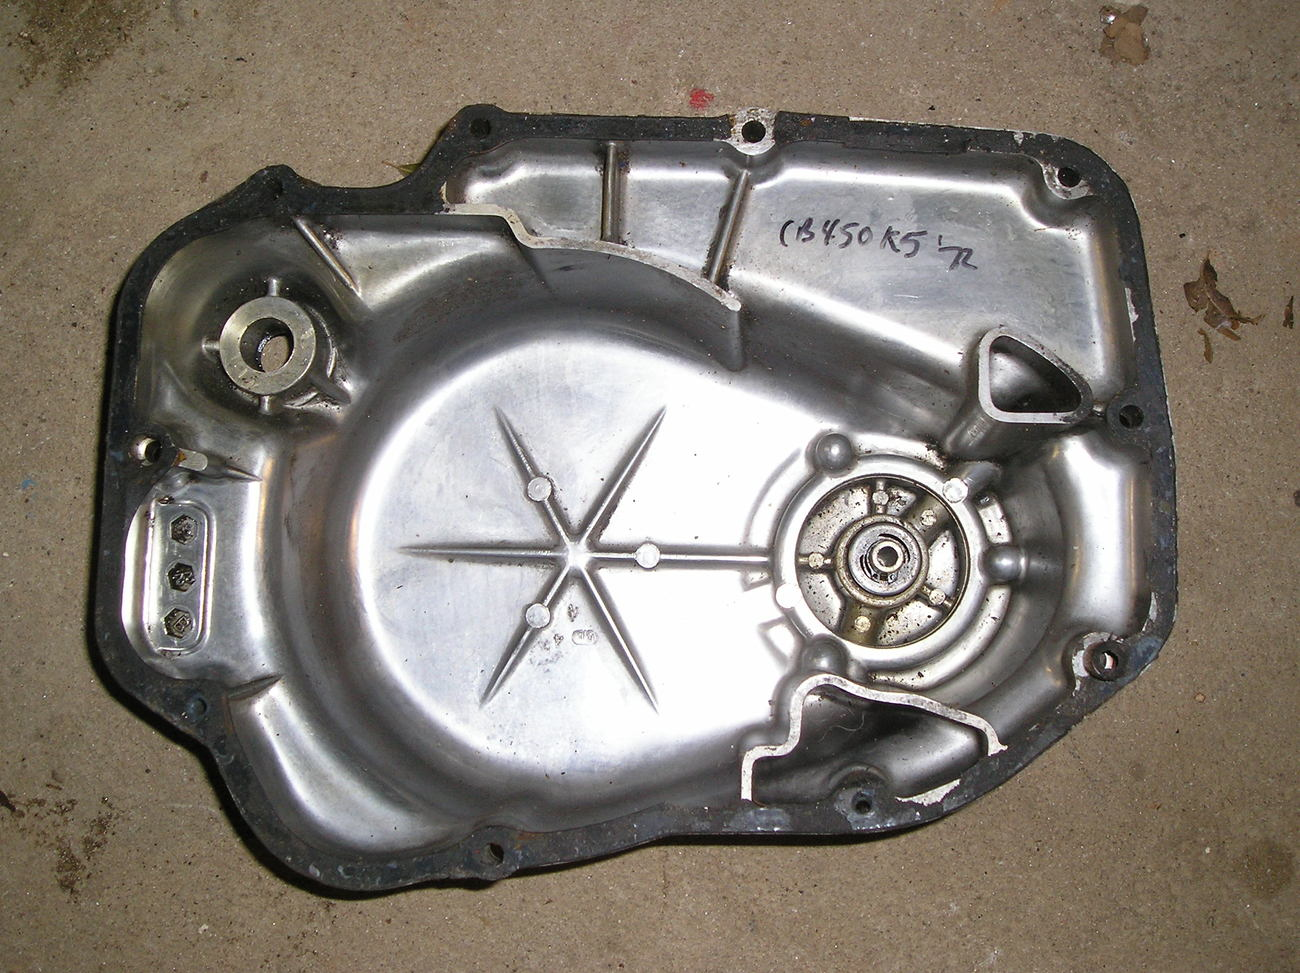 Honda CB450K5 '72 clutch cover